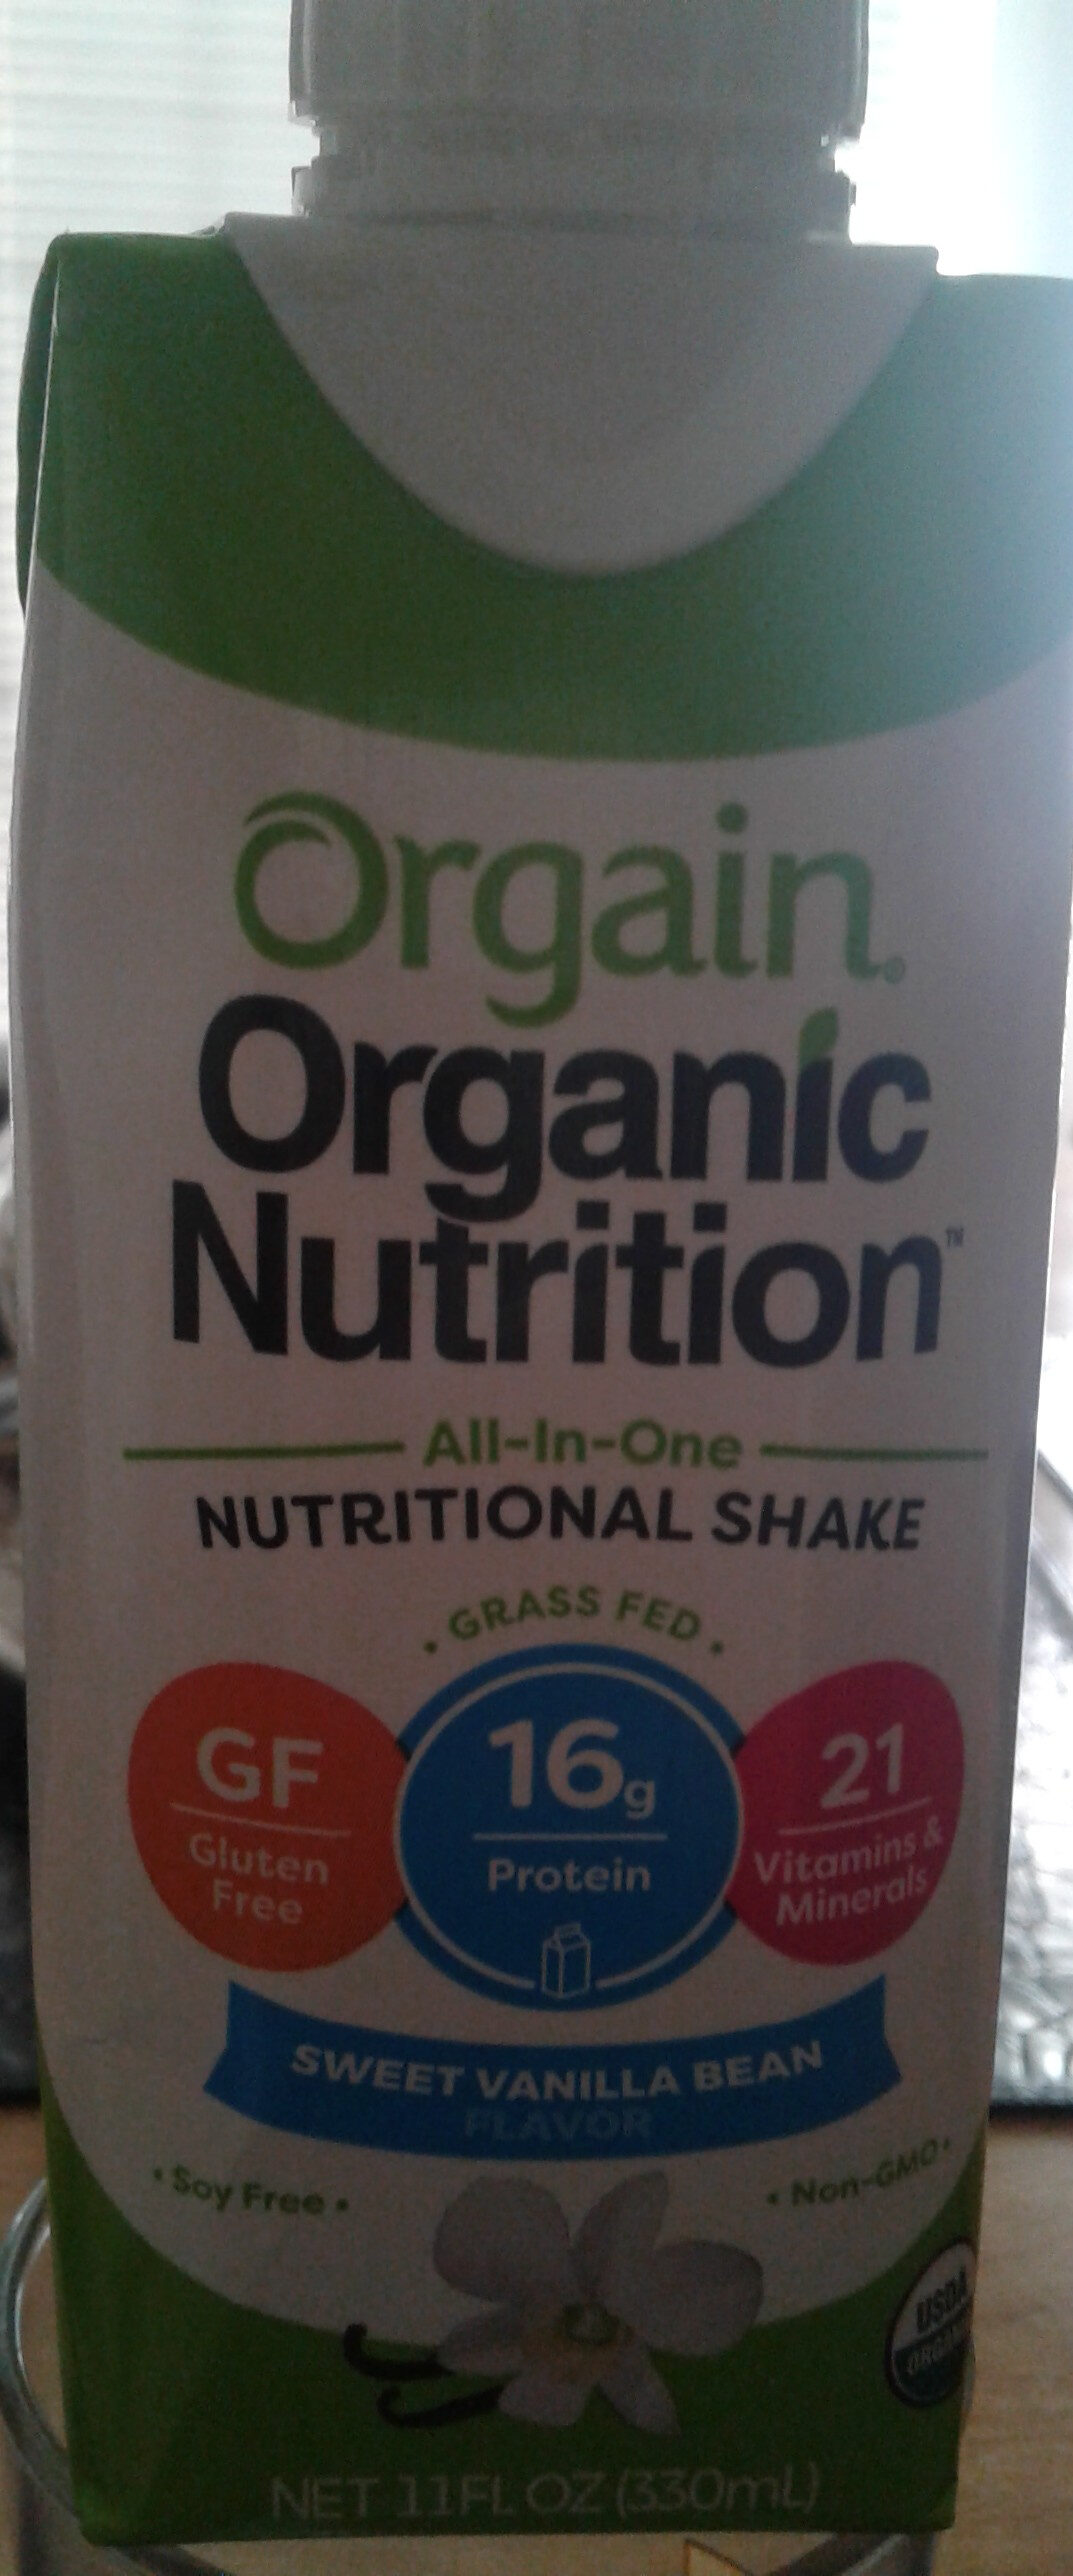 Orgain Organic Nutrition - Product